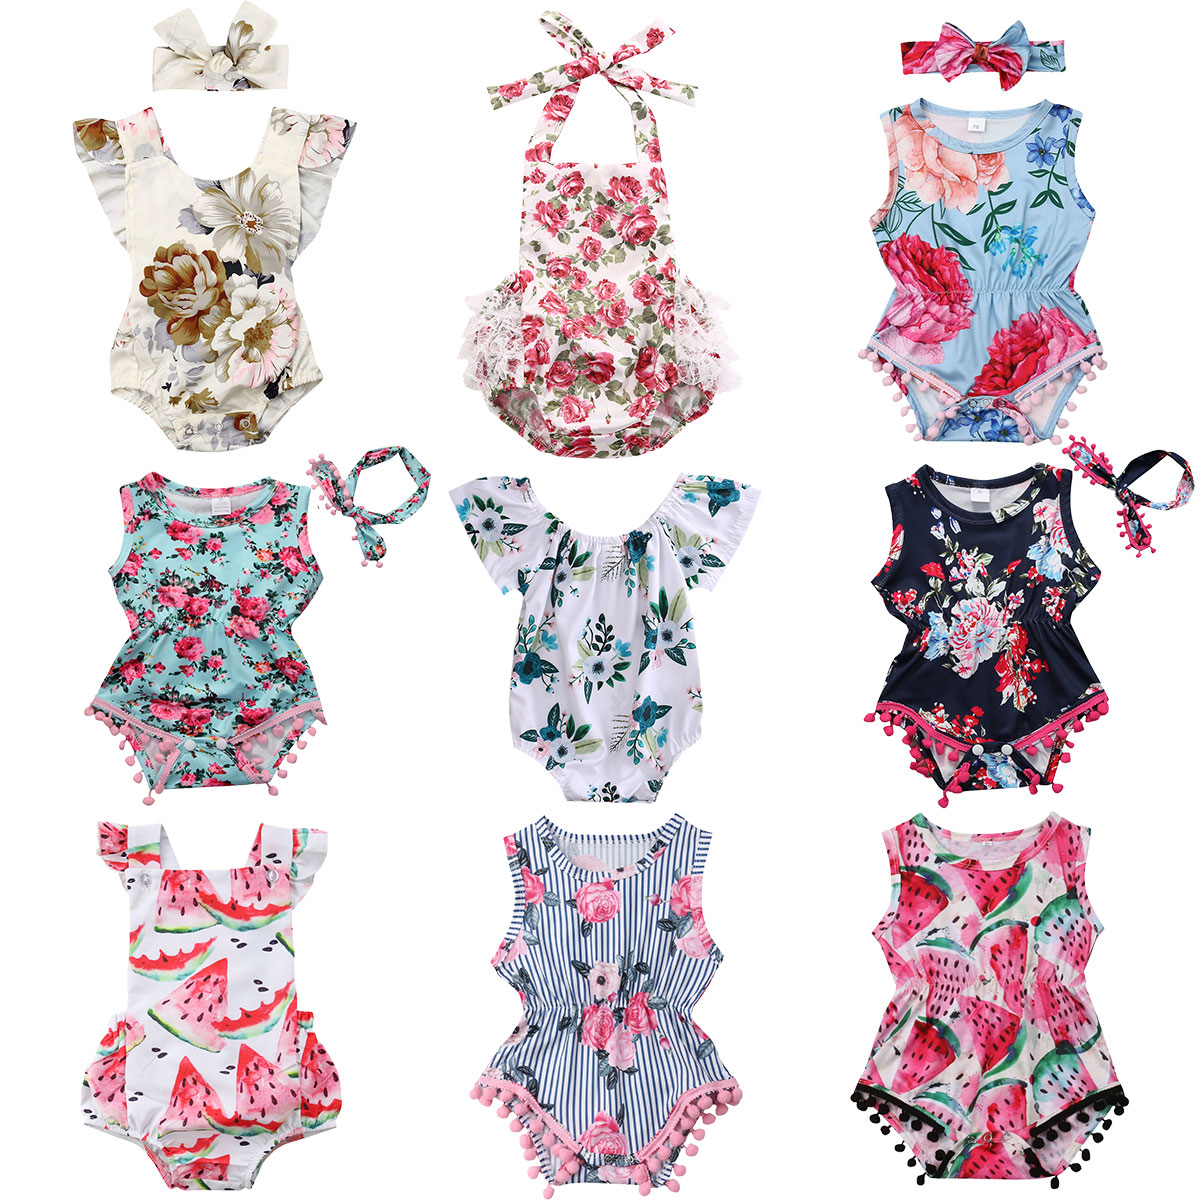 Infant Newborn Baby Girls Romper Summer Baby Clothes Flower Watermelon Print Tassel Jumpsuit Playsuit Sunsuit Baby Girl Costumes